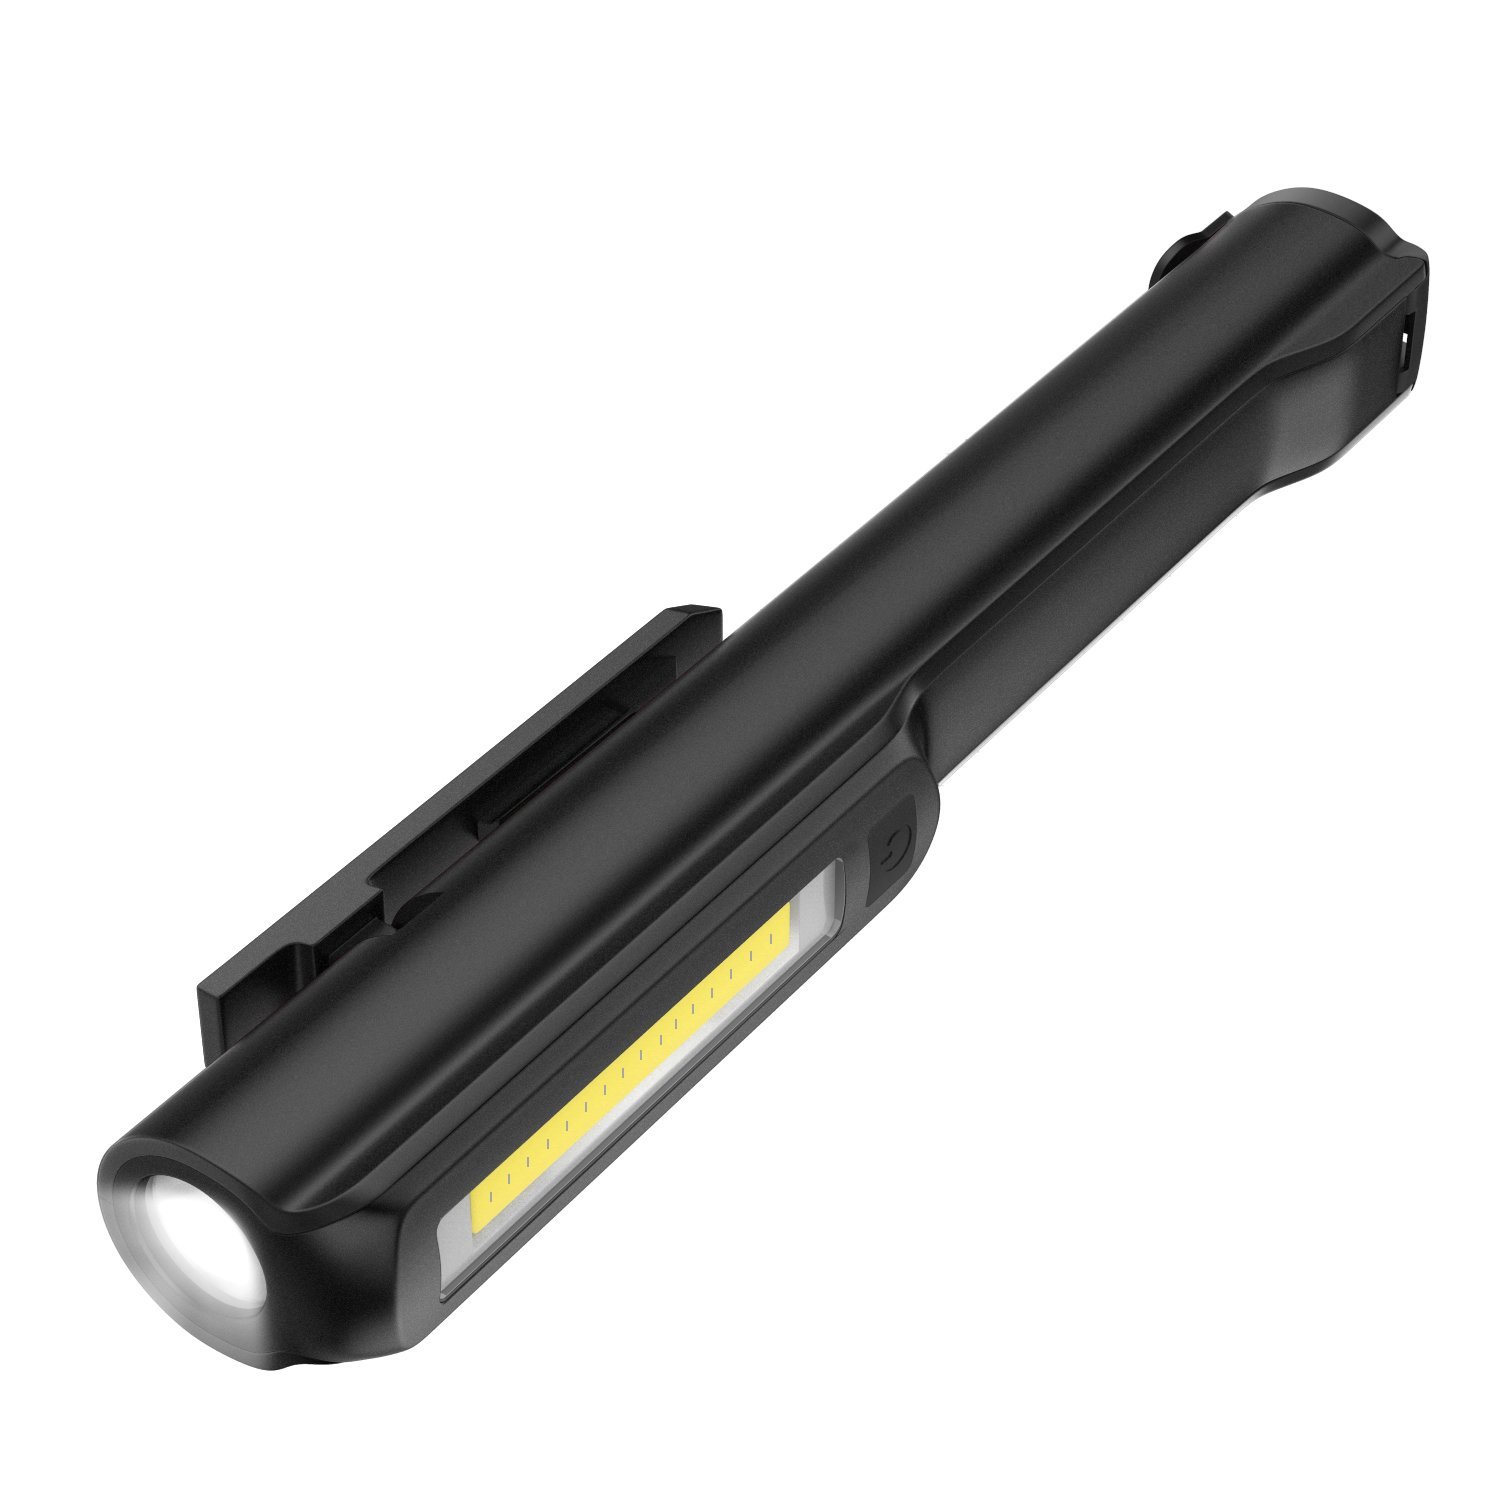 130 Lumen Flash Black Dual Magnet Ultra Bright Inspection Work Light with Powerful Magnetic Base and Rotating Magentic Clip Housolution Pocket Pen Work Light 160 Lumen COB Lamp